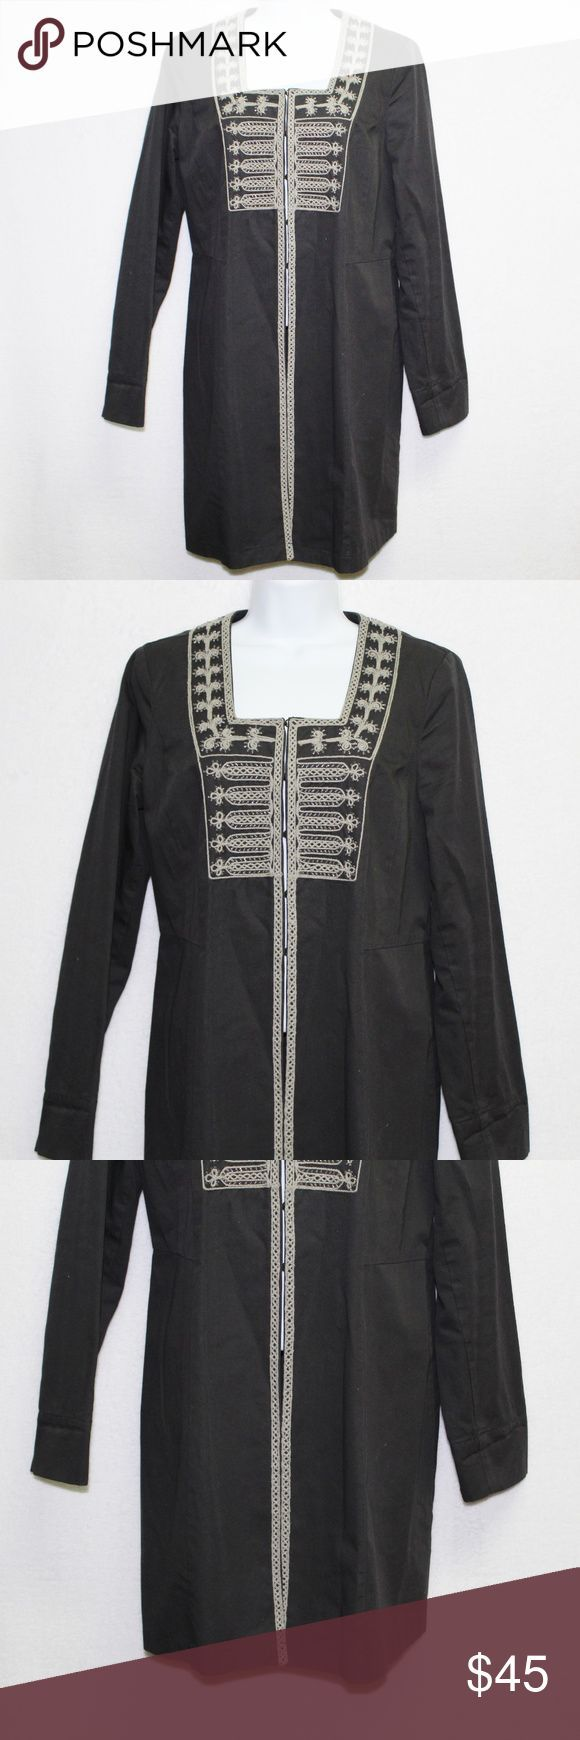 Cabi Turkish Delight beaded jacket Sgt Peppers Cabi womens trench jacket size 8   My Posh Picks